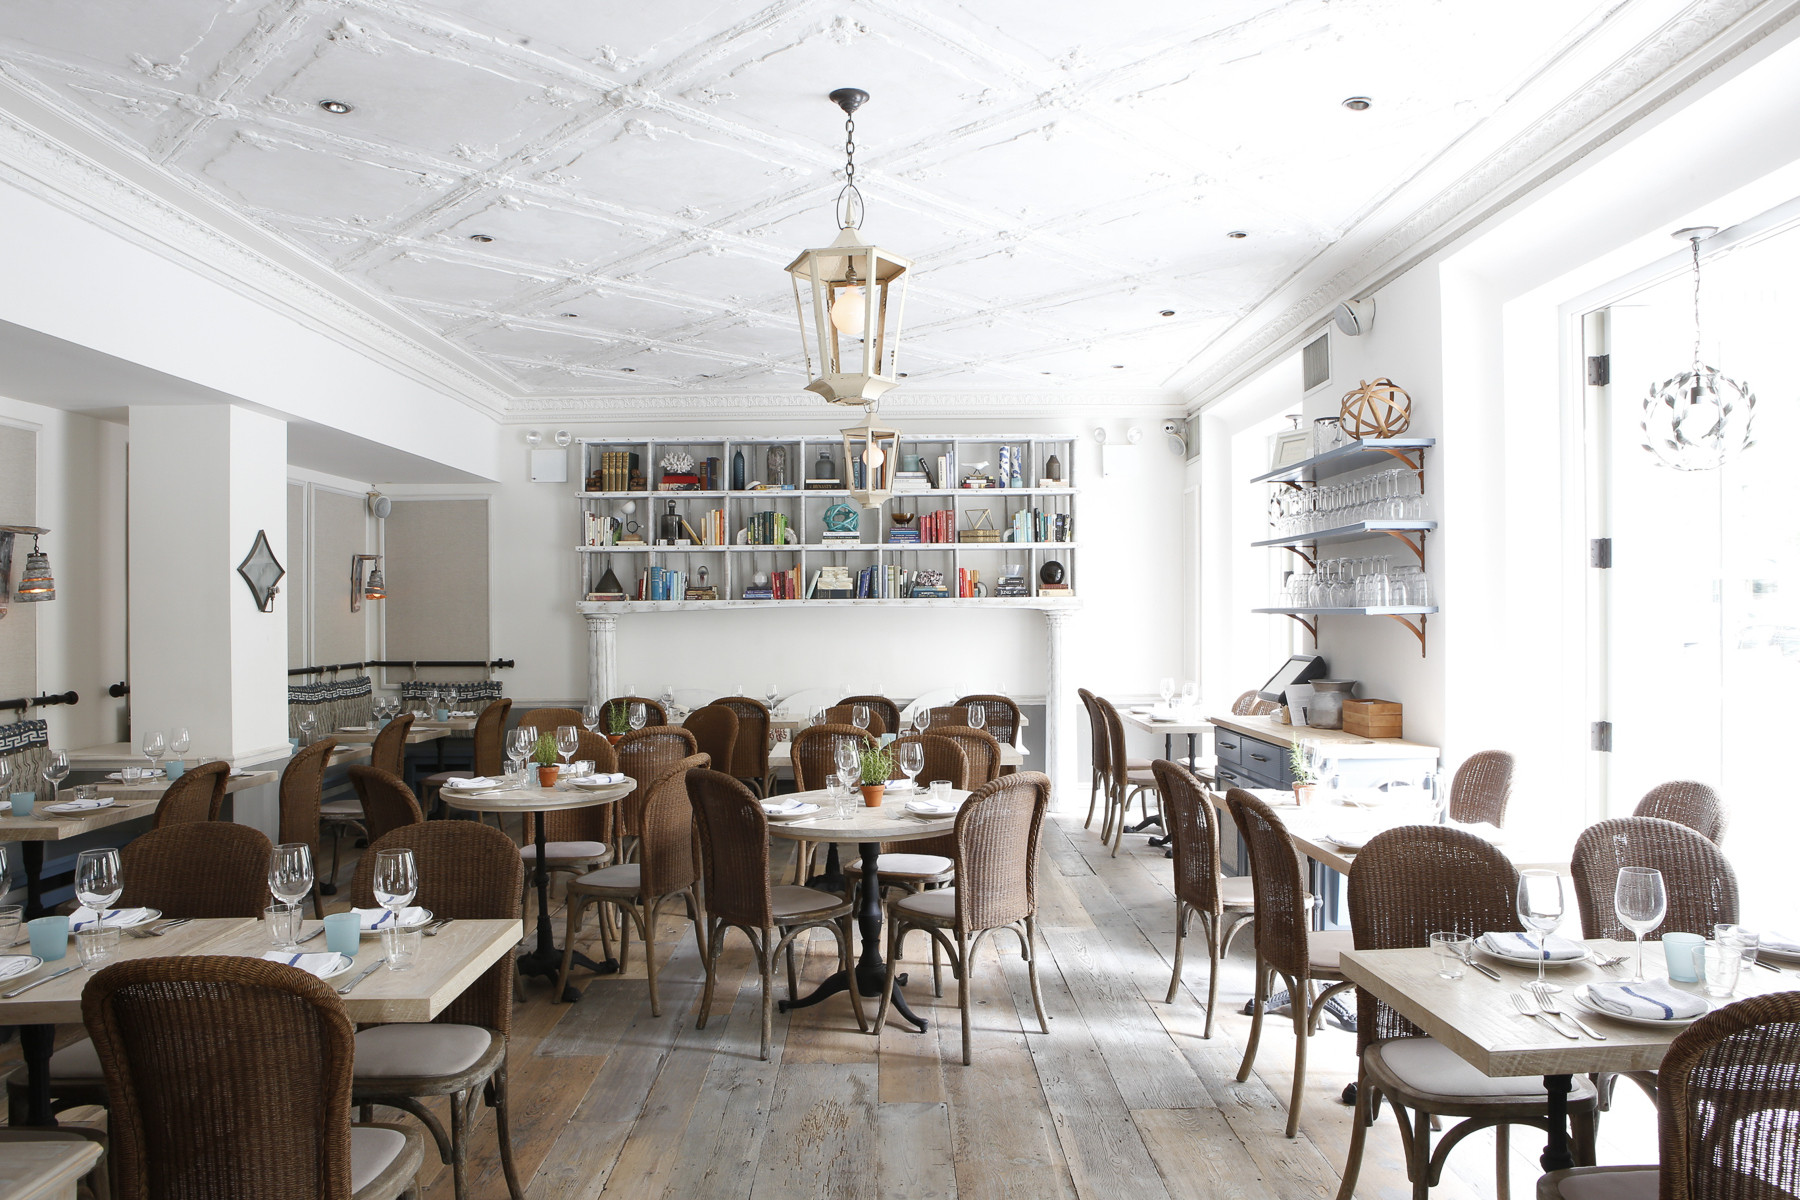 An Eclectic French Restaurant for the Stylish Set